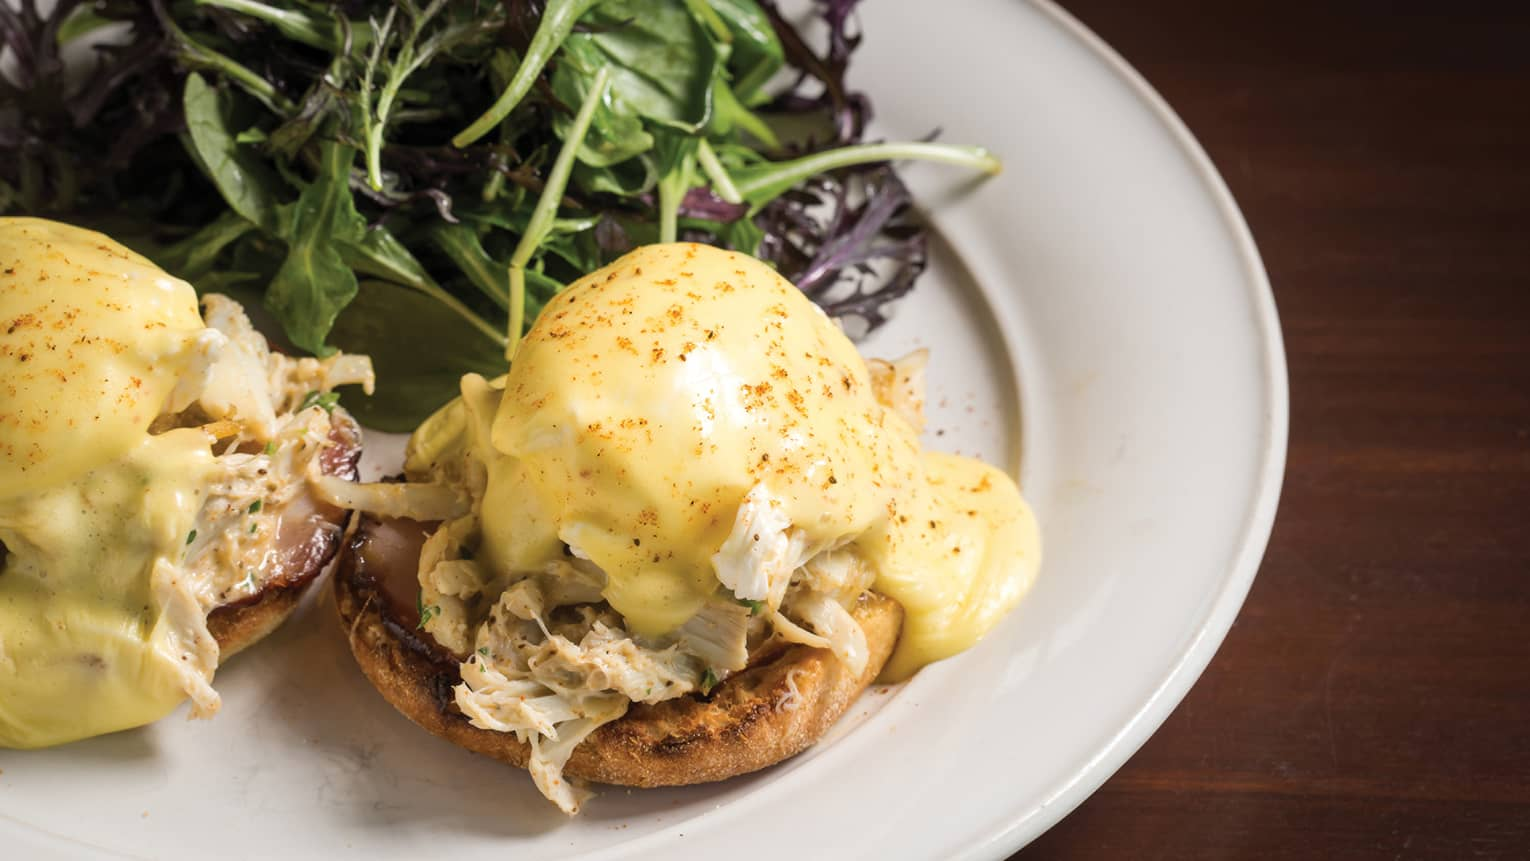 Close-up of Crab Benedict on white plate, bread with crab meat and poached egg, smothered in Hollandaise sauce